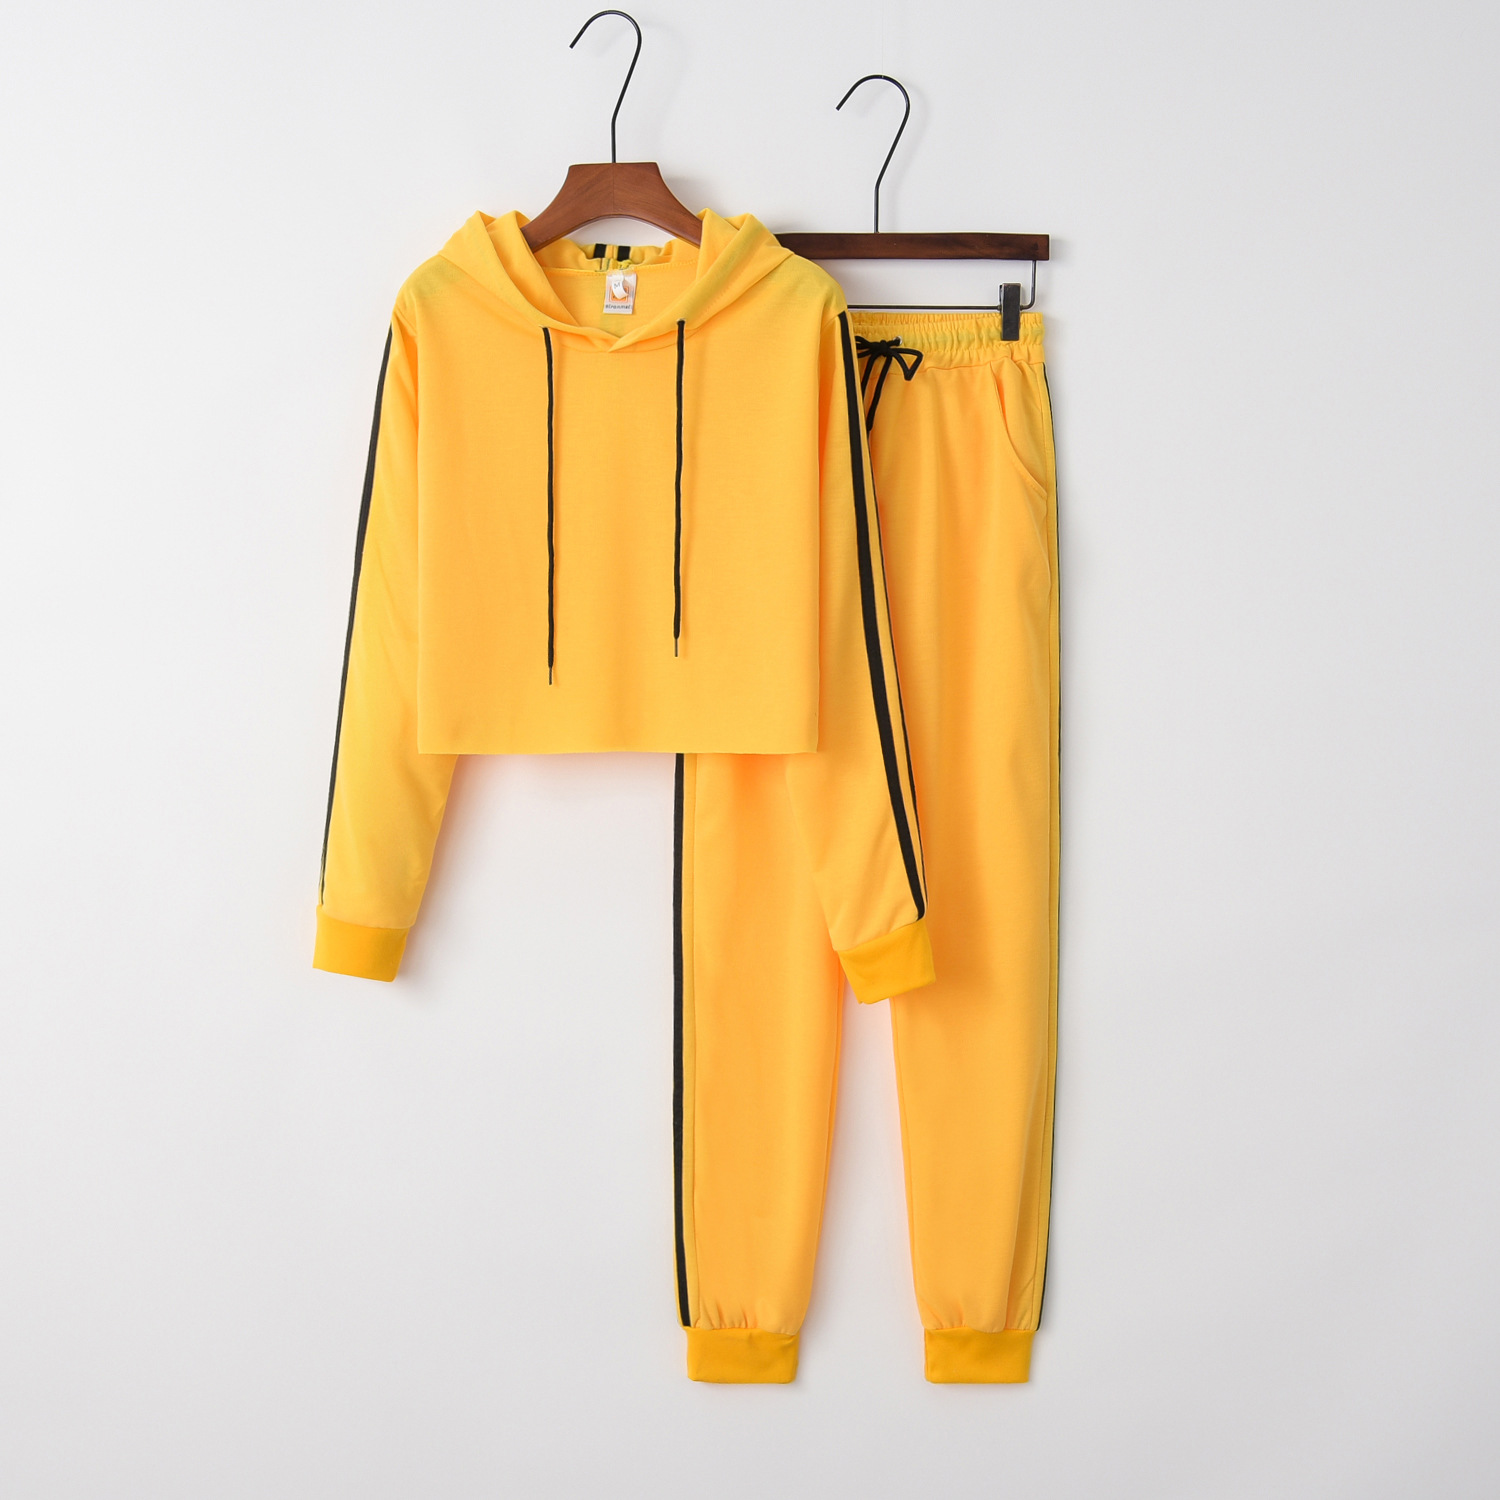 Yellow Top 2020 New Design Fashion Hot Sale Suit Set Women Tracksuit Two-piece Style Outfit Sweatshirt Sport Wear